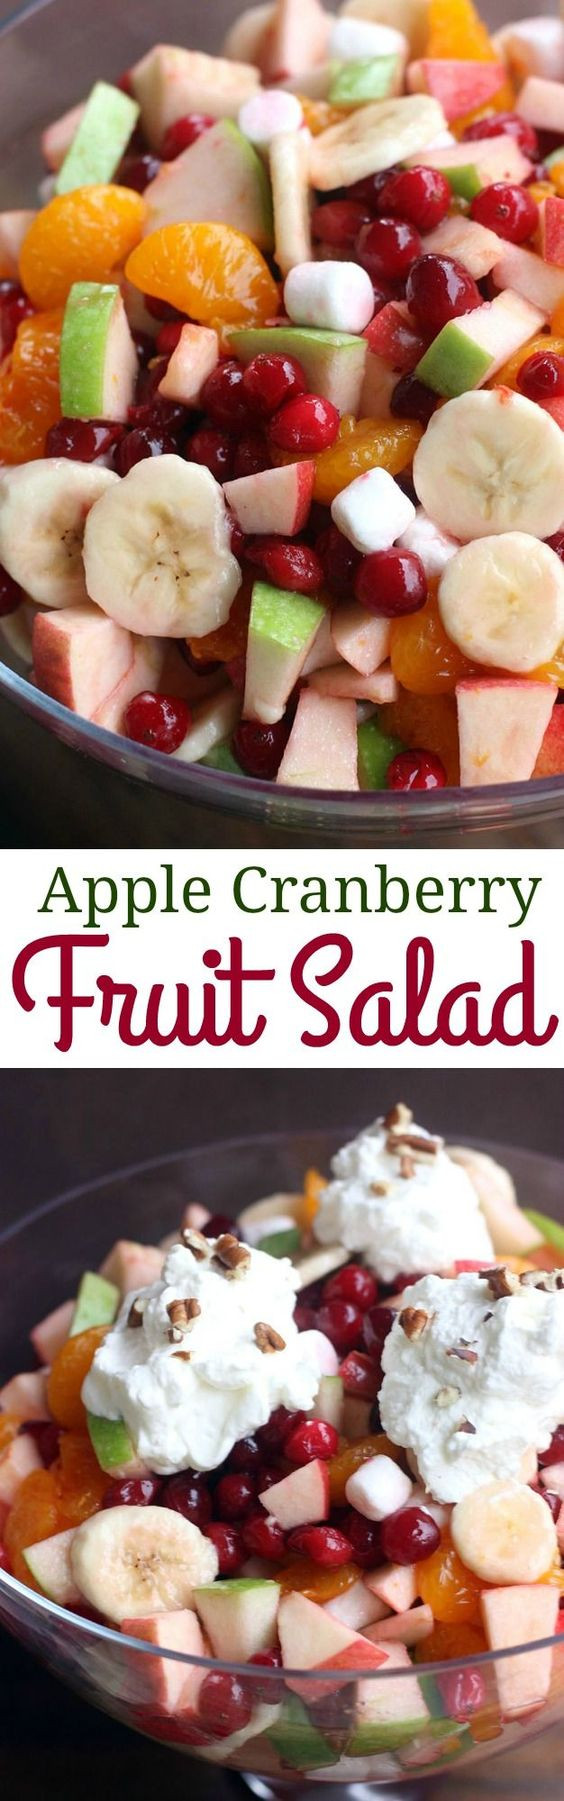 Cranberry Salad Recipes For Thanksgiving  Apple Cranberry Fruit Salad Recipe